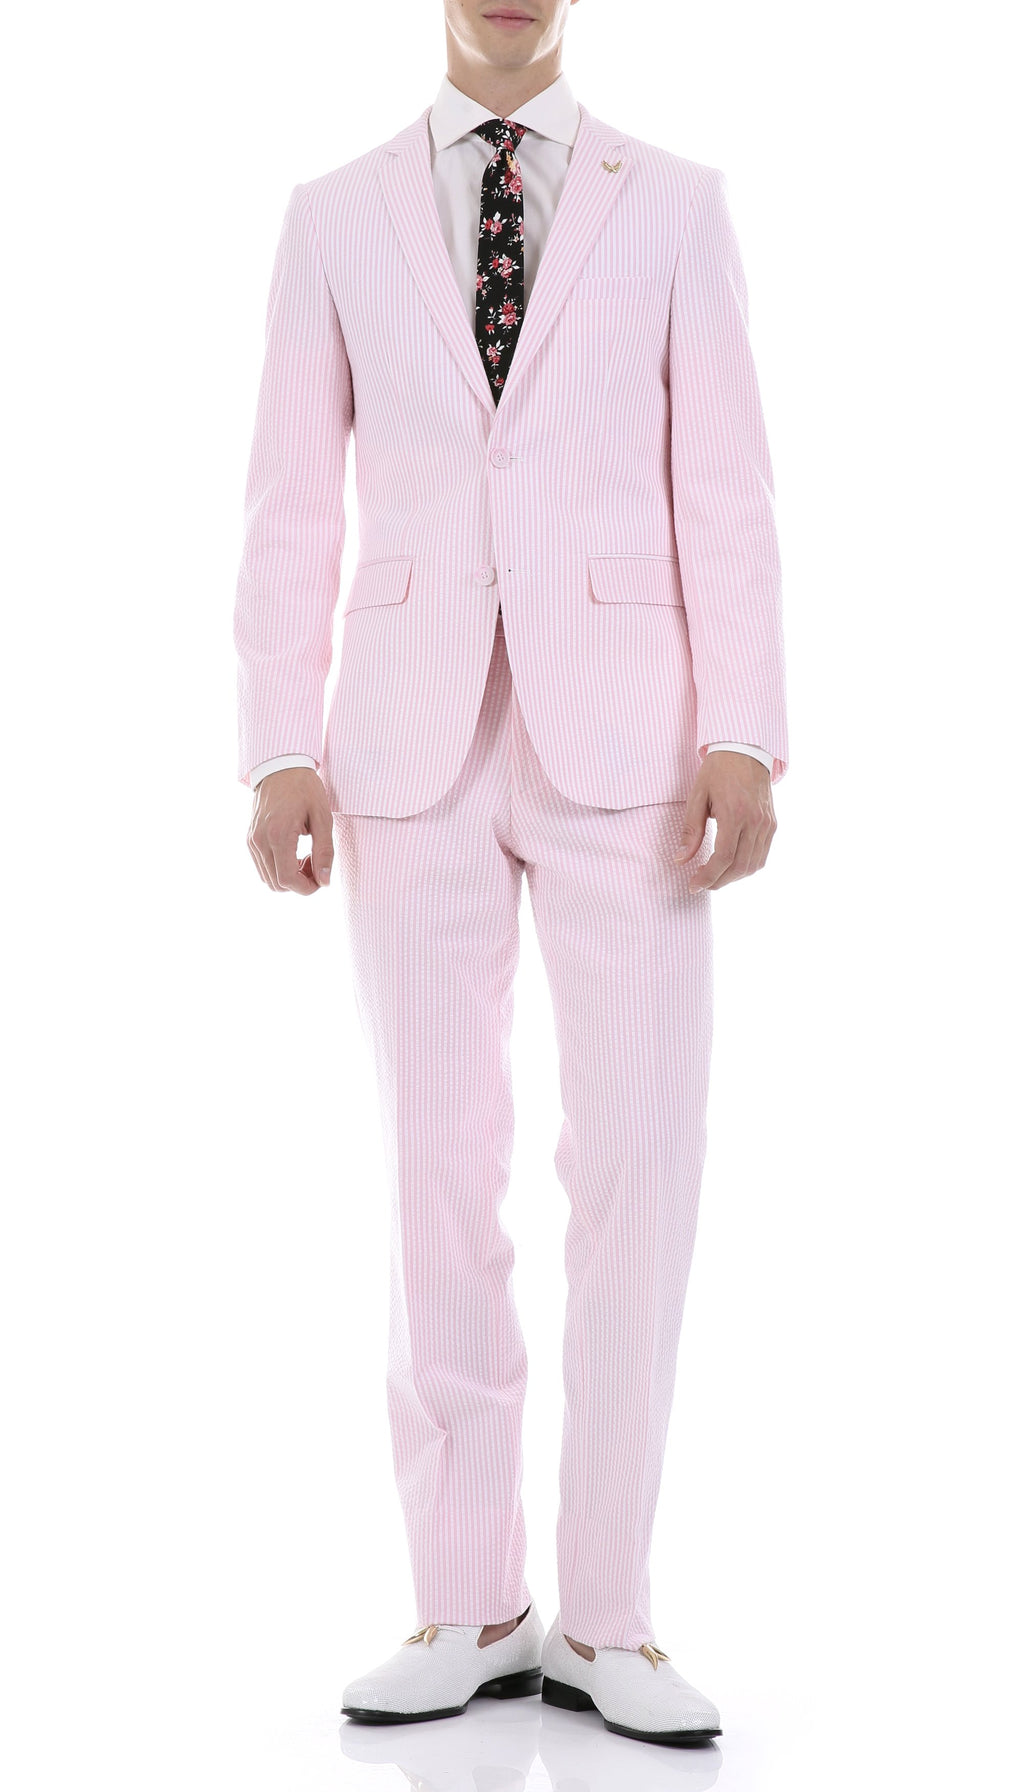 Men's  Slim Fit Two Button Pink Seersucker Suit - Giorgio's Menswear